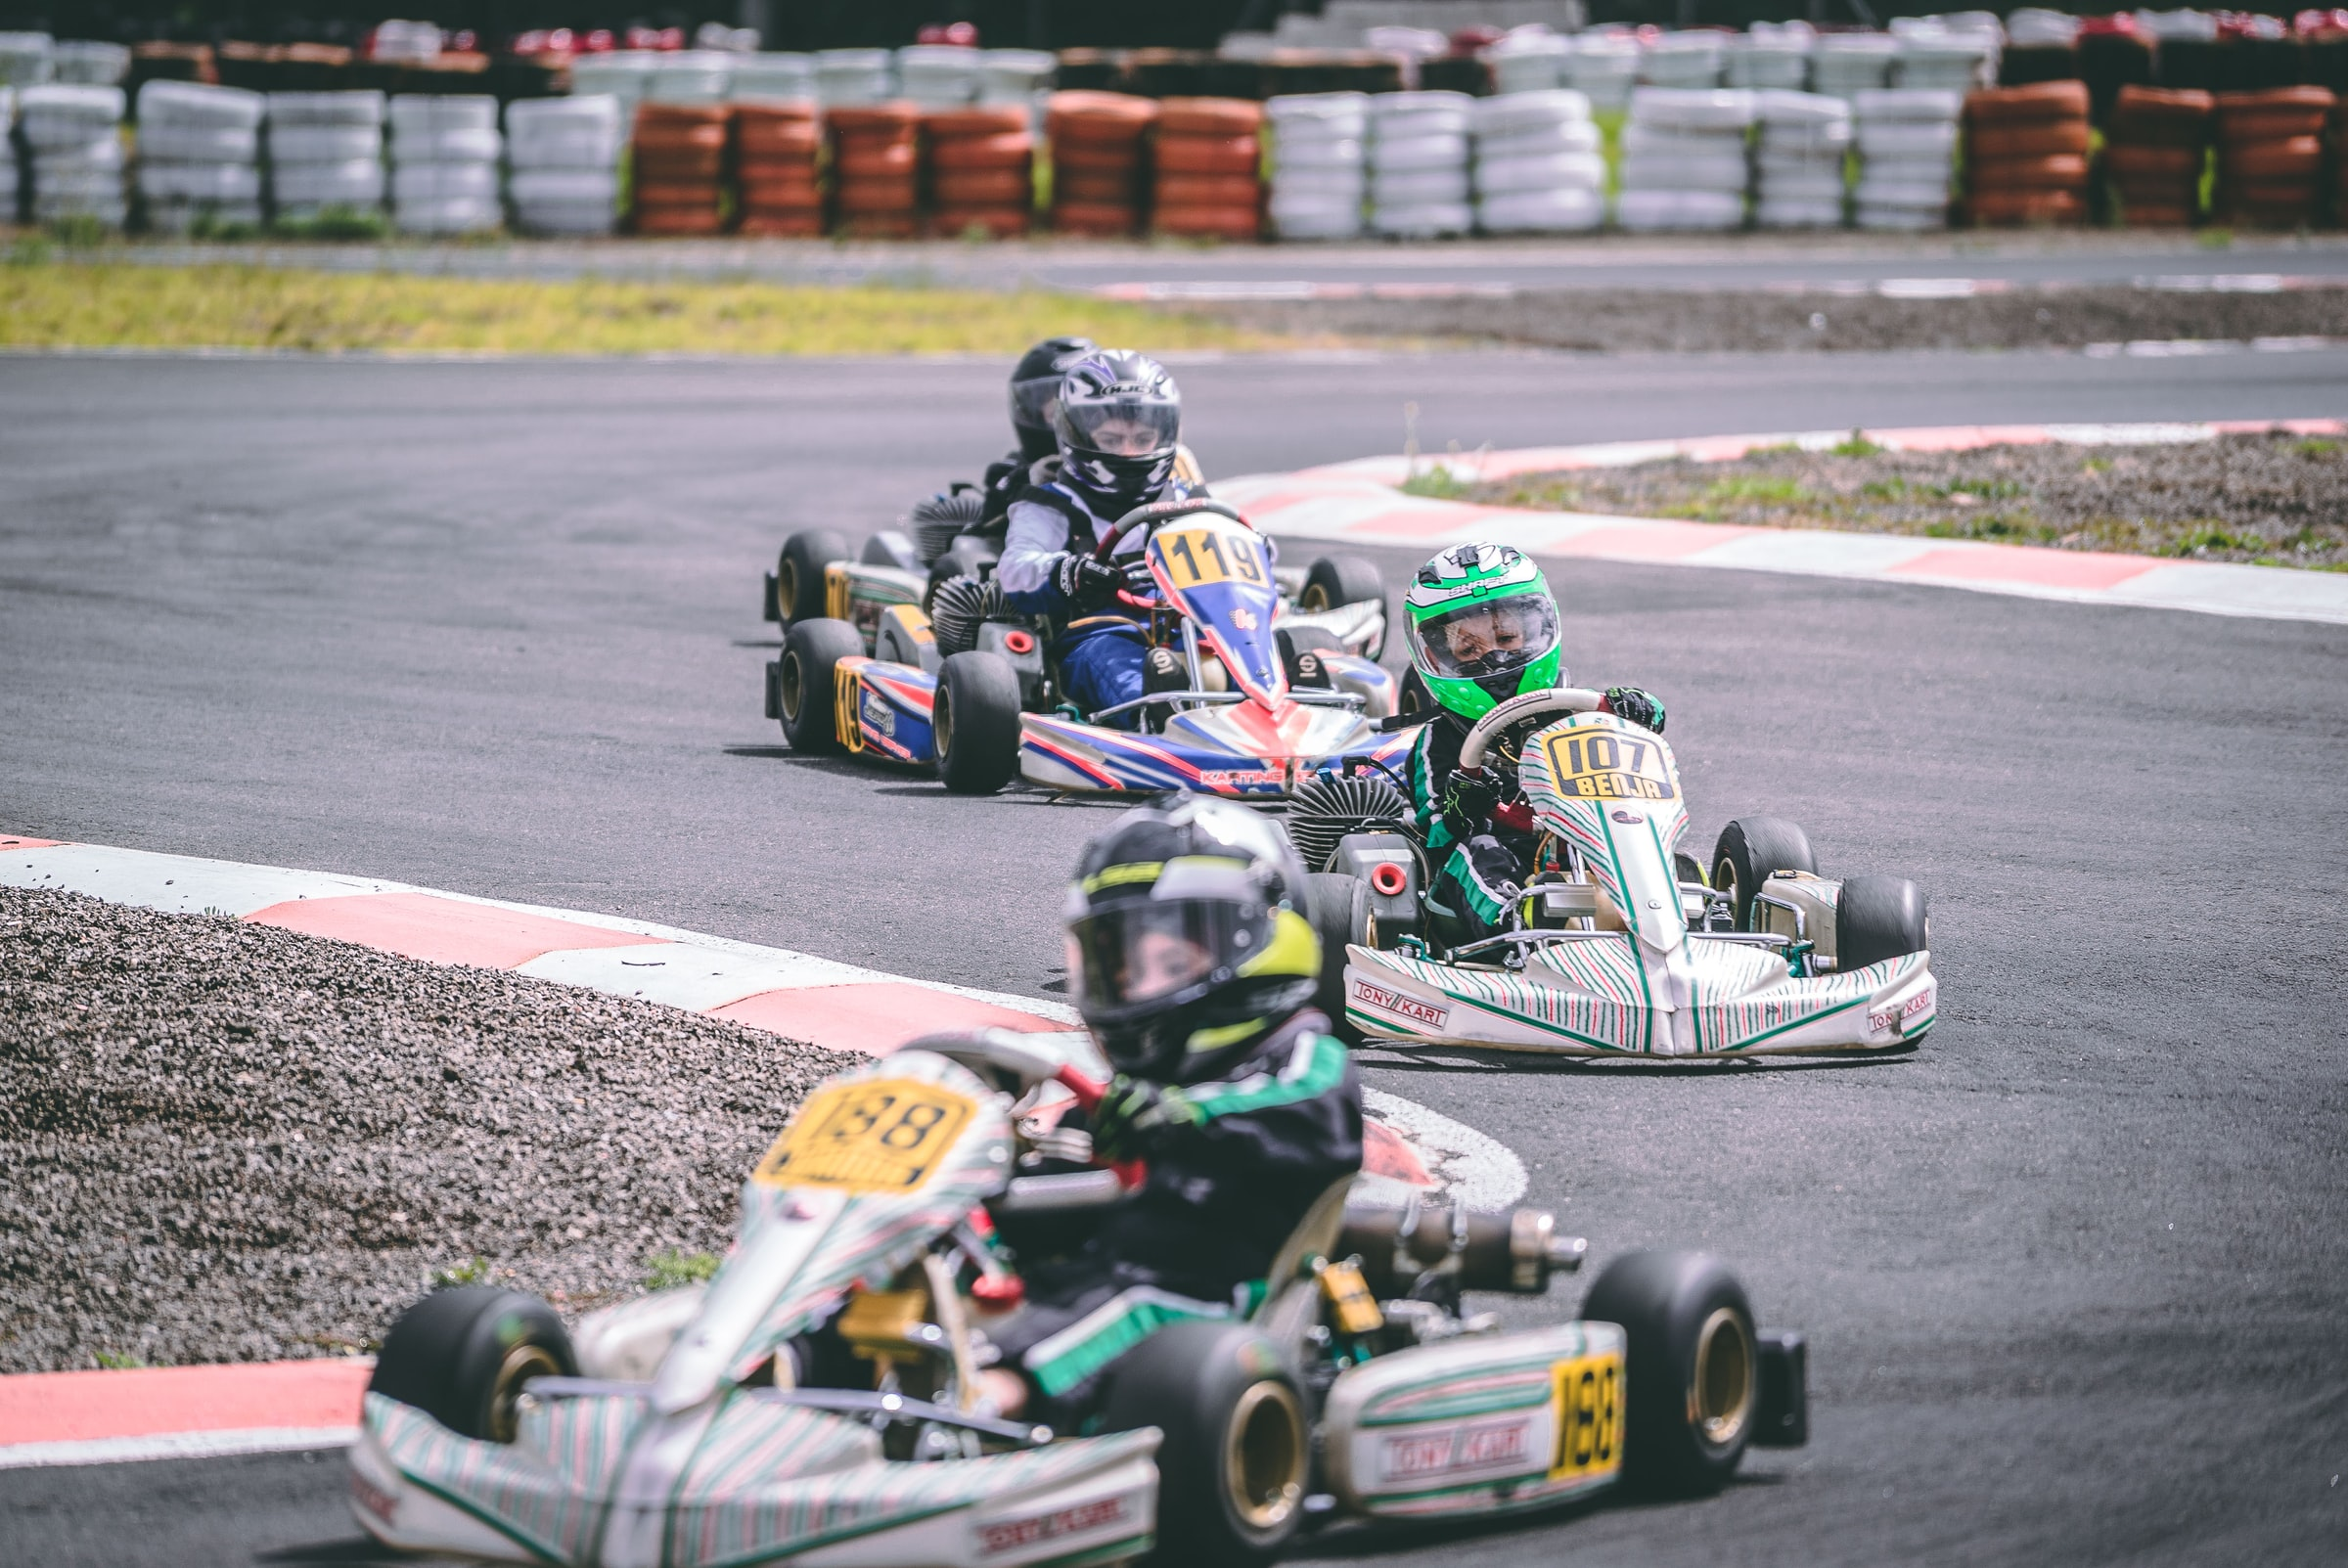 Go Karting For 3 Year Olds